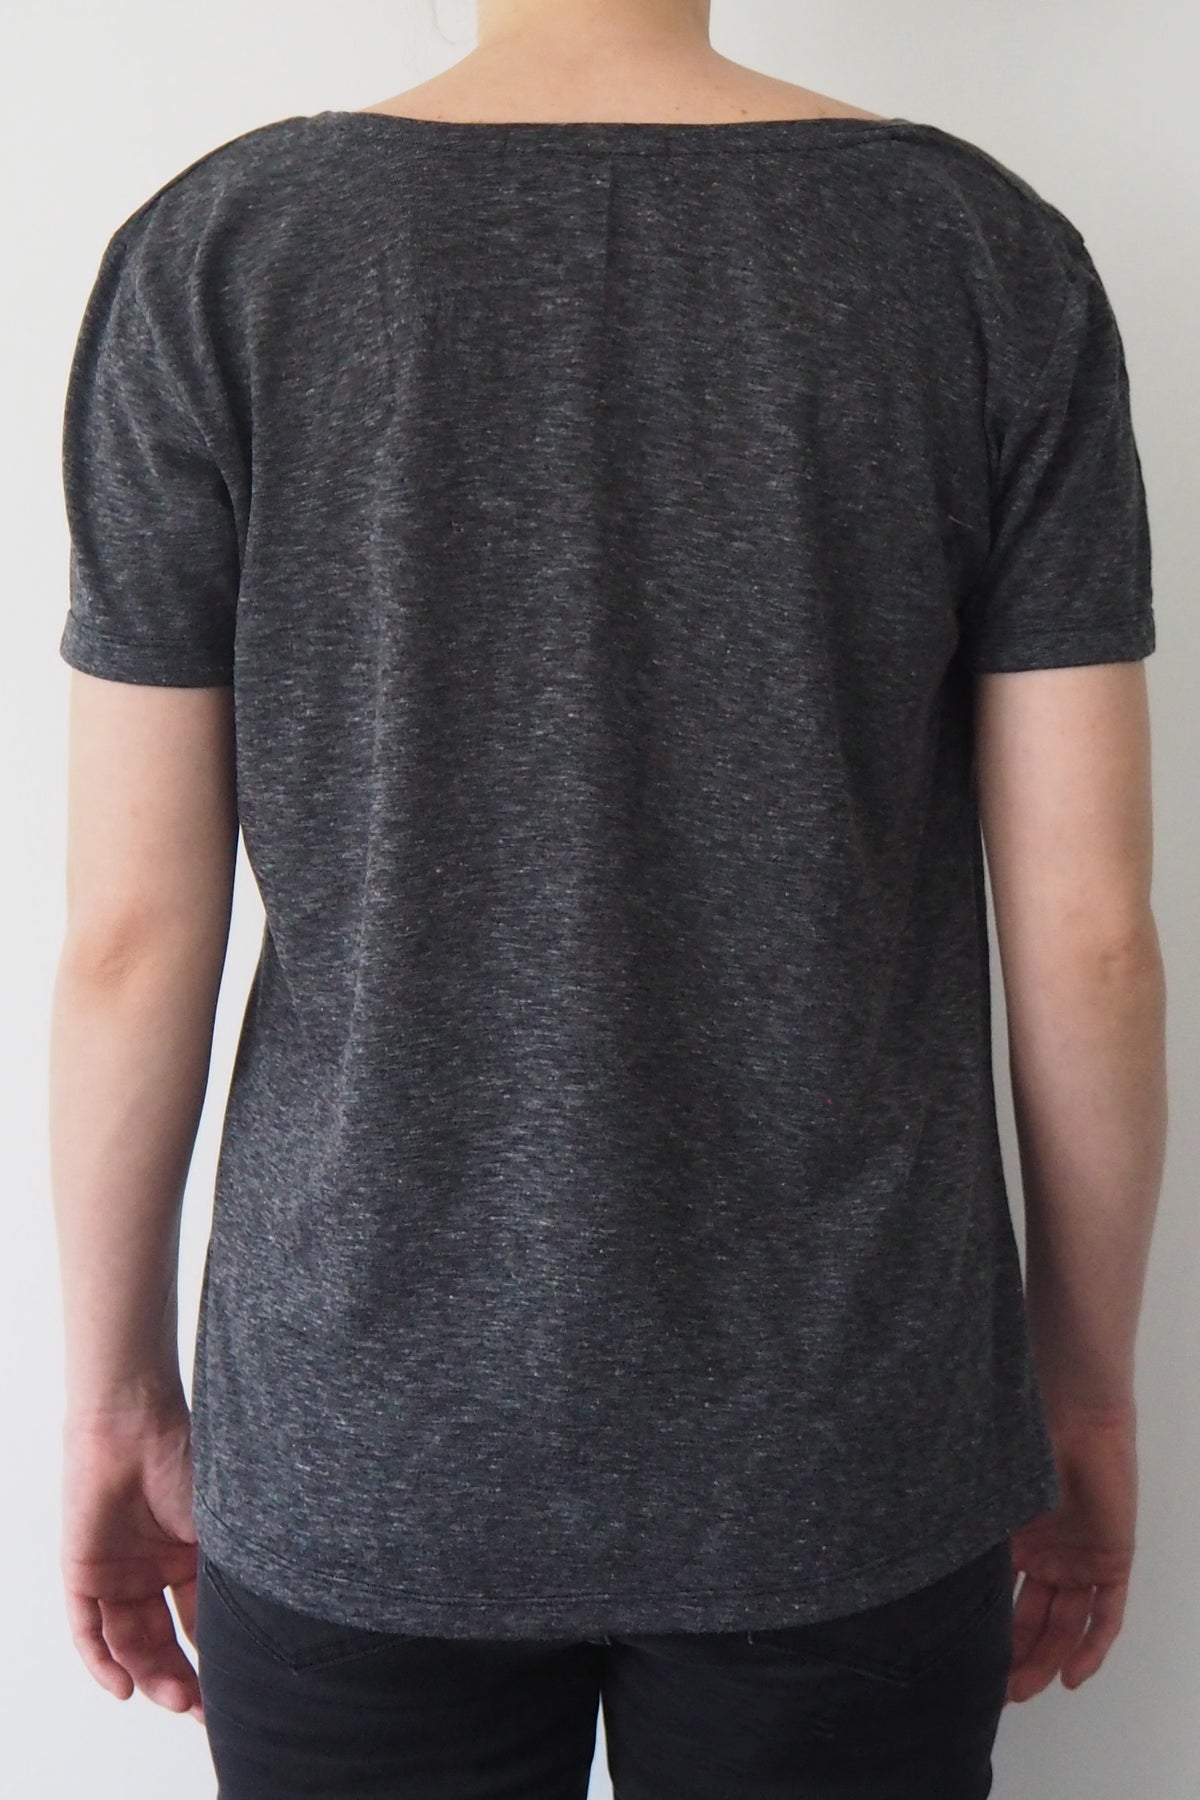 *New Item* Grey Round Neck T-shirt